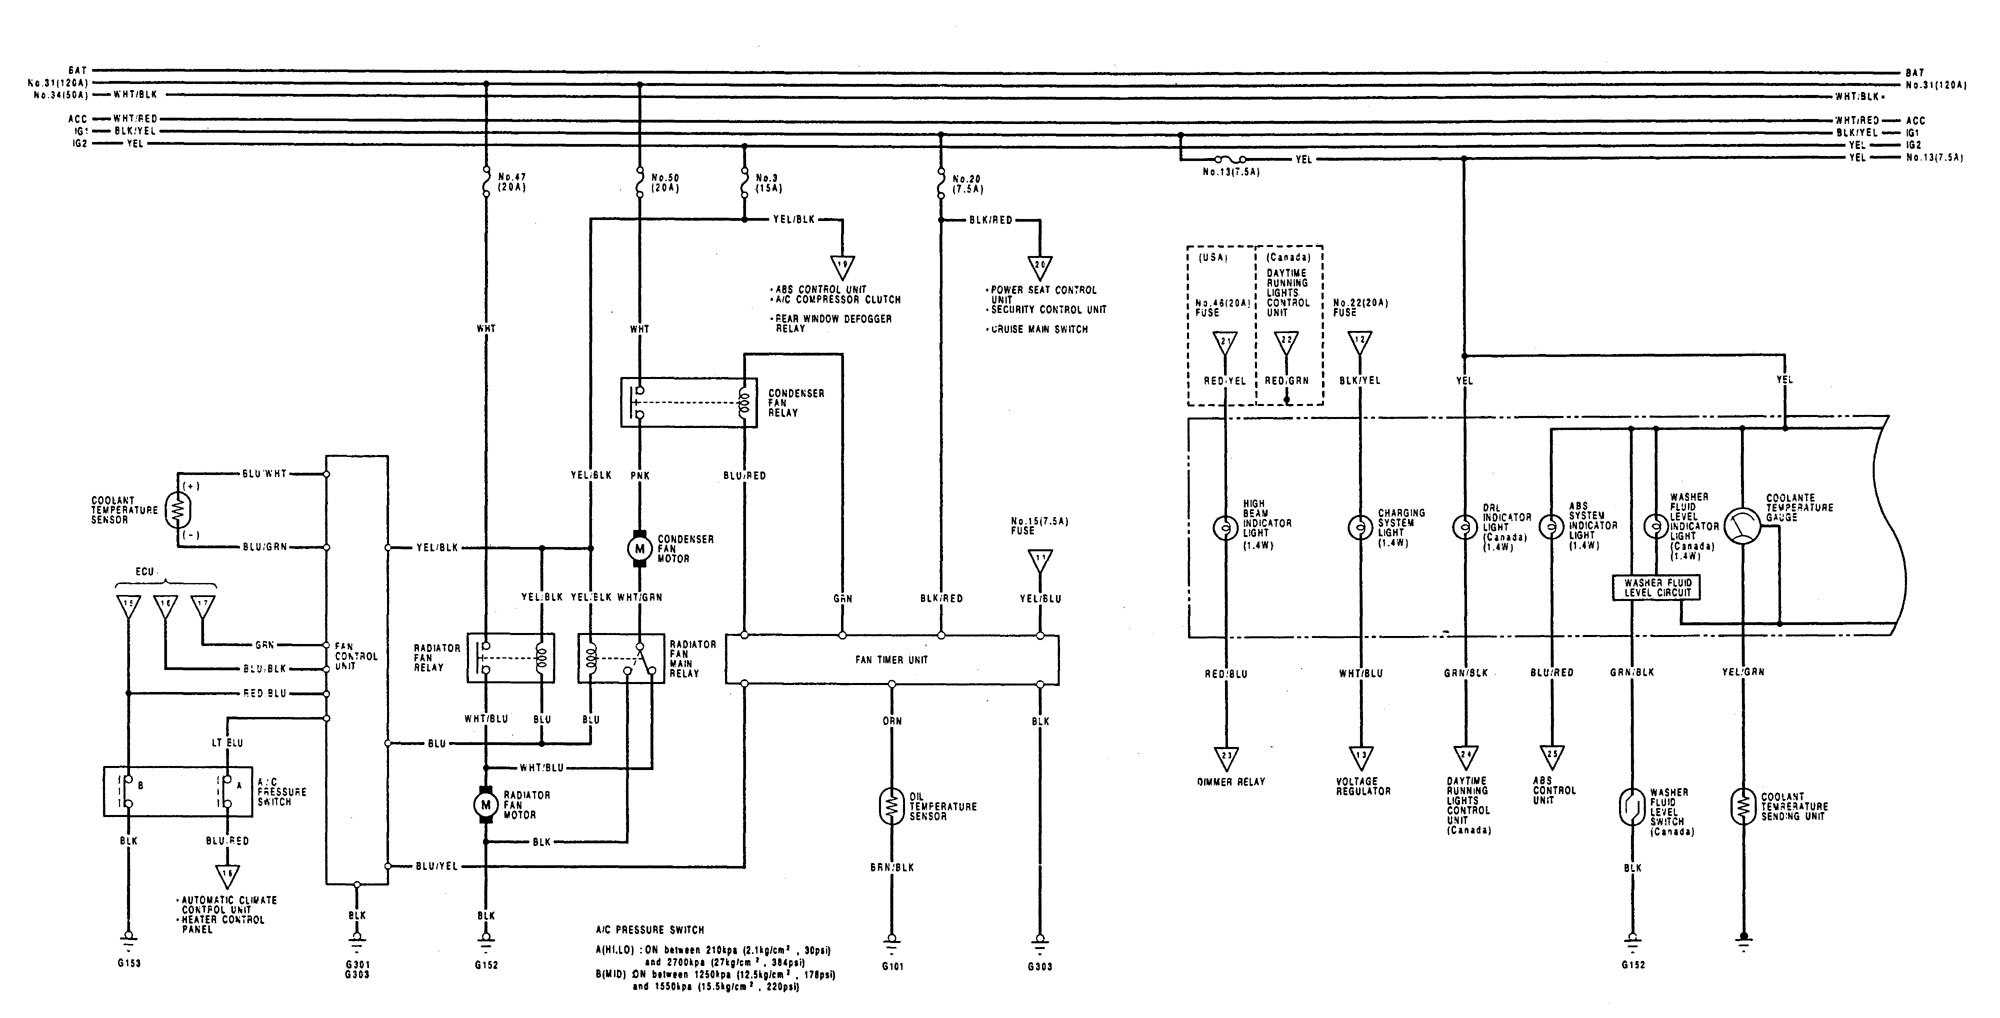 Lighterdiagram besides Diagrama Del Stereo De La Honda Crv also Radiowires moreover D Wiring Diagram Cigarette Lighter Lighterdiagram together with Acura Legend Wiring Diagram Cooling Fans V. on 05 acura rl radio wiring diagram